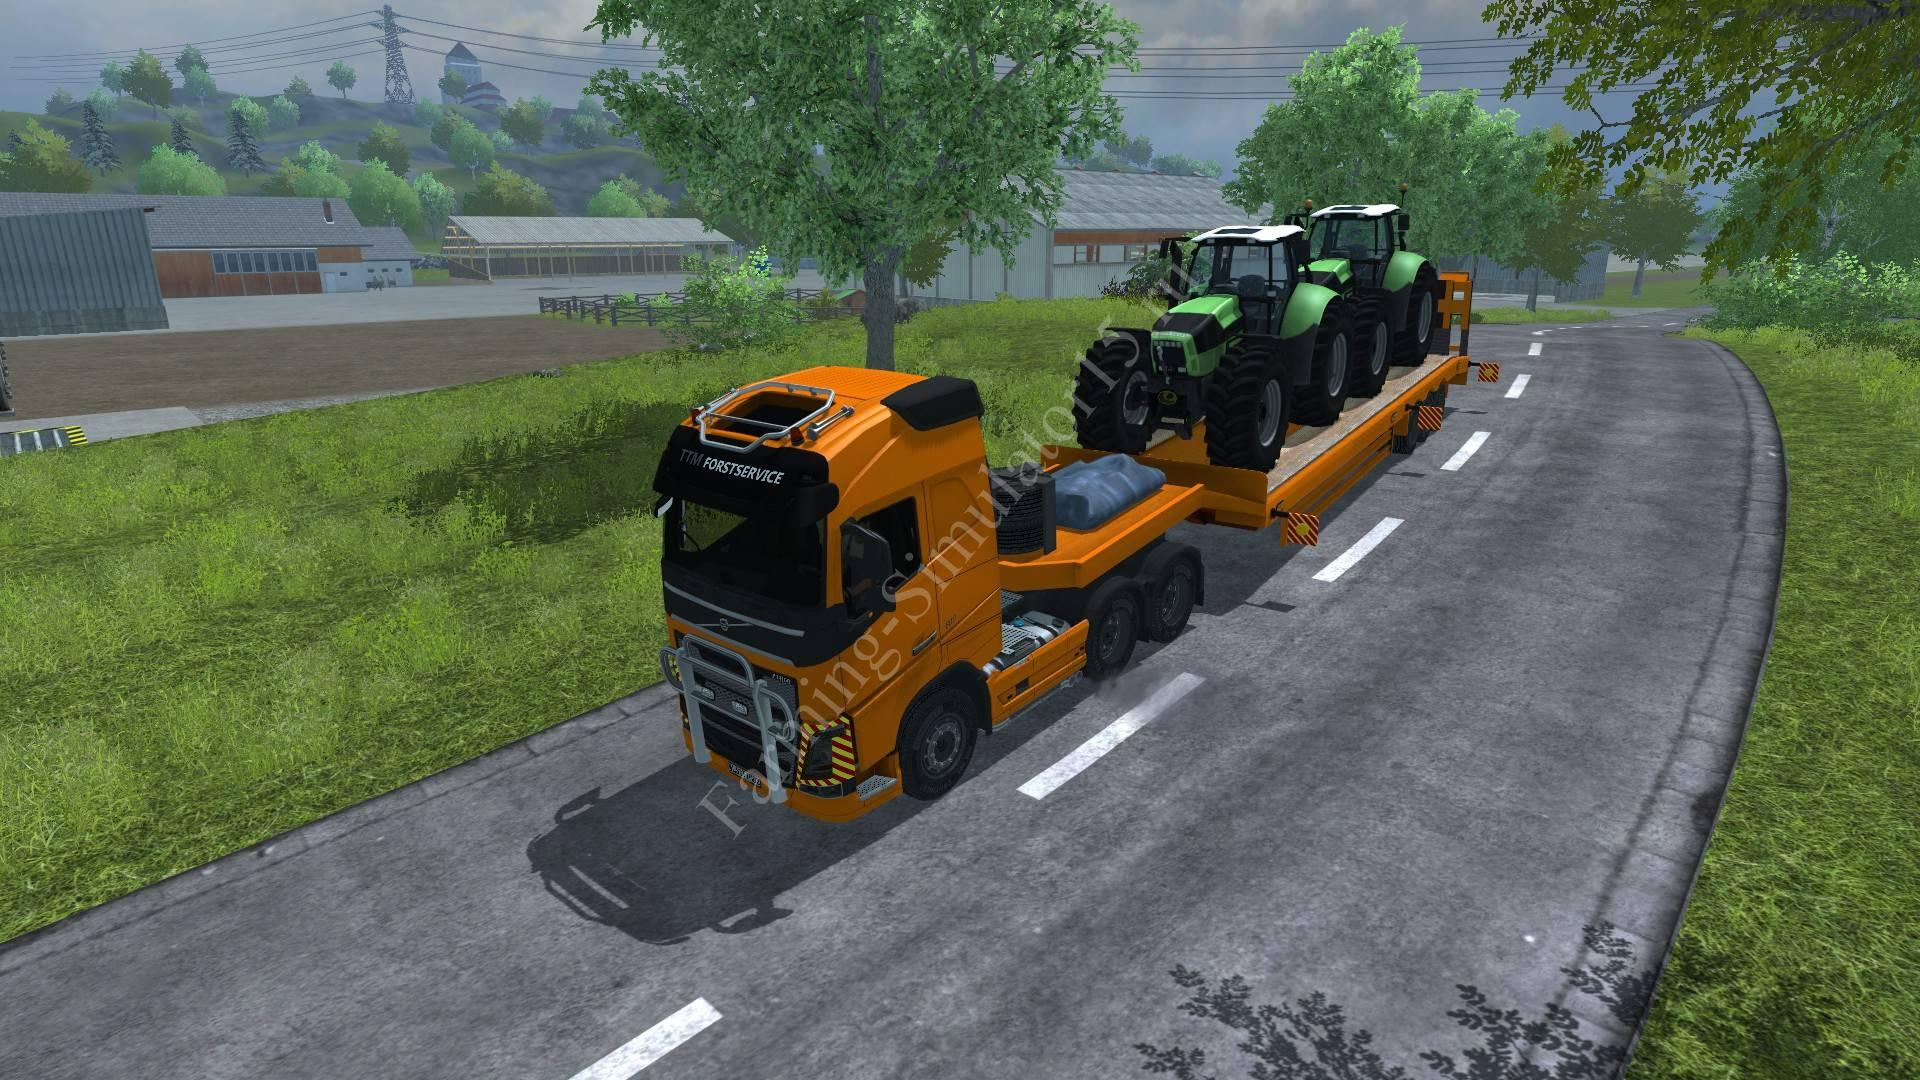 Мод грузовика Volvo FH 16 2012 Speial transport v 1.0 Farming Simulator 2013, Farming Simulator 13